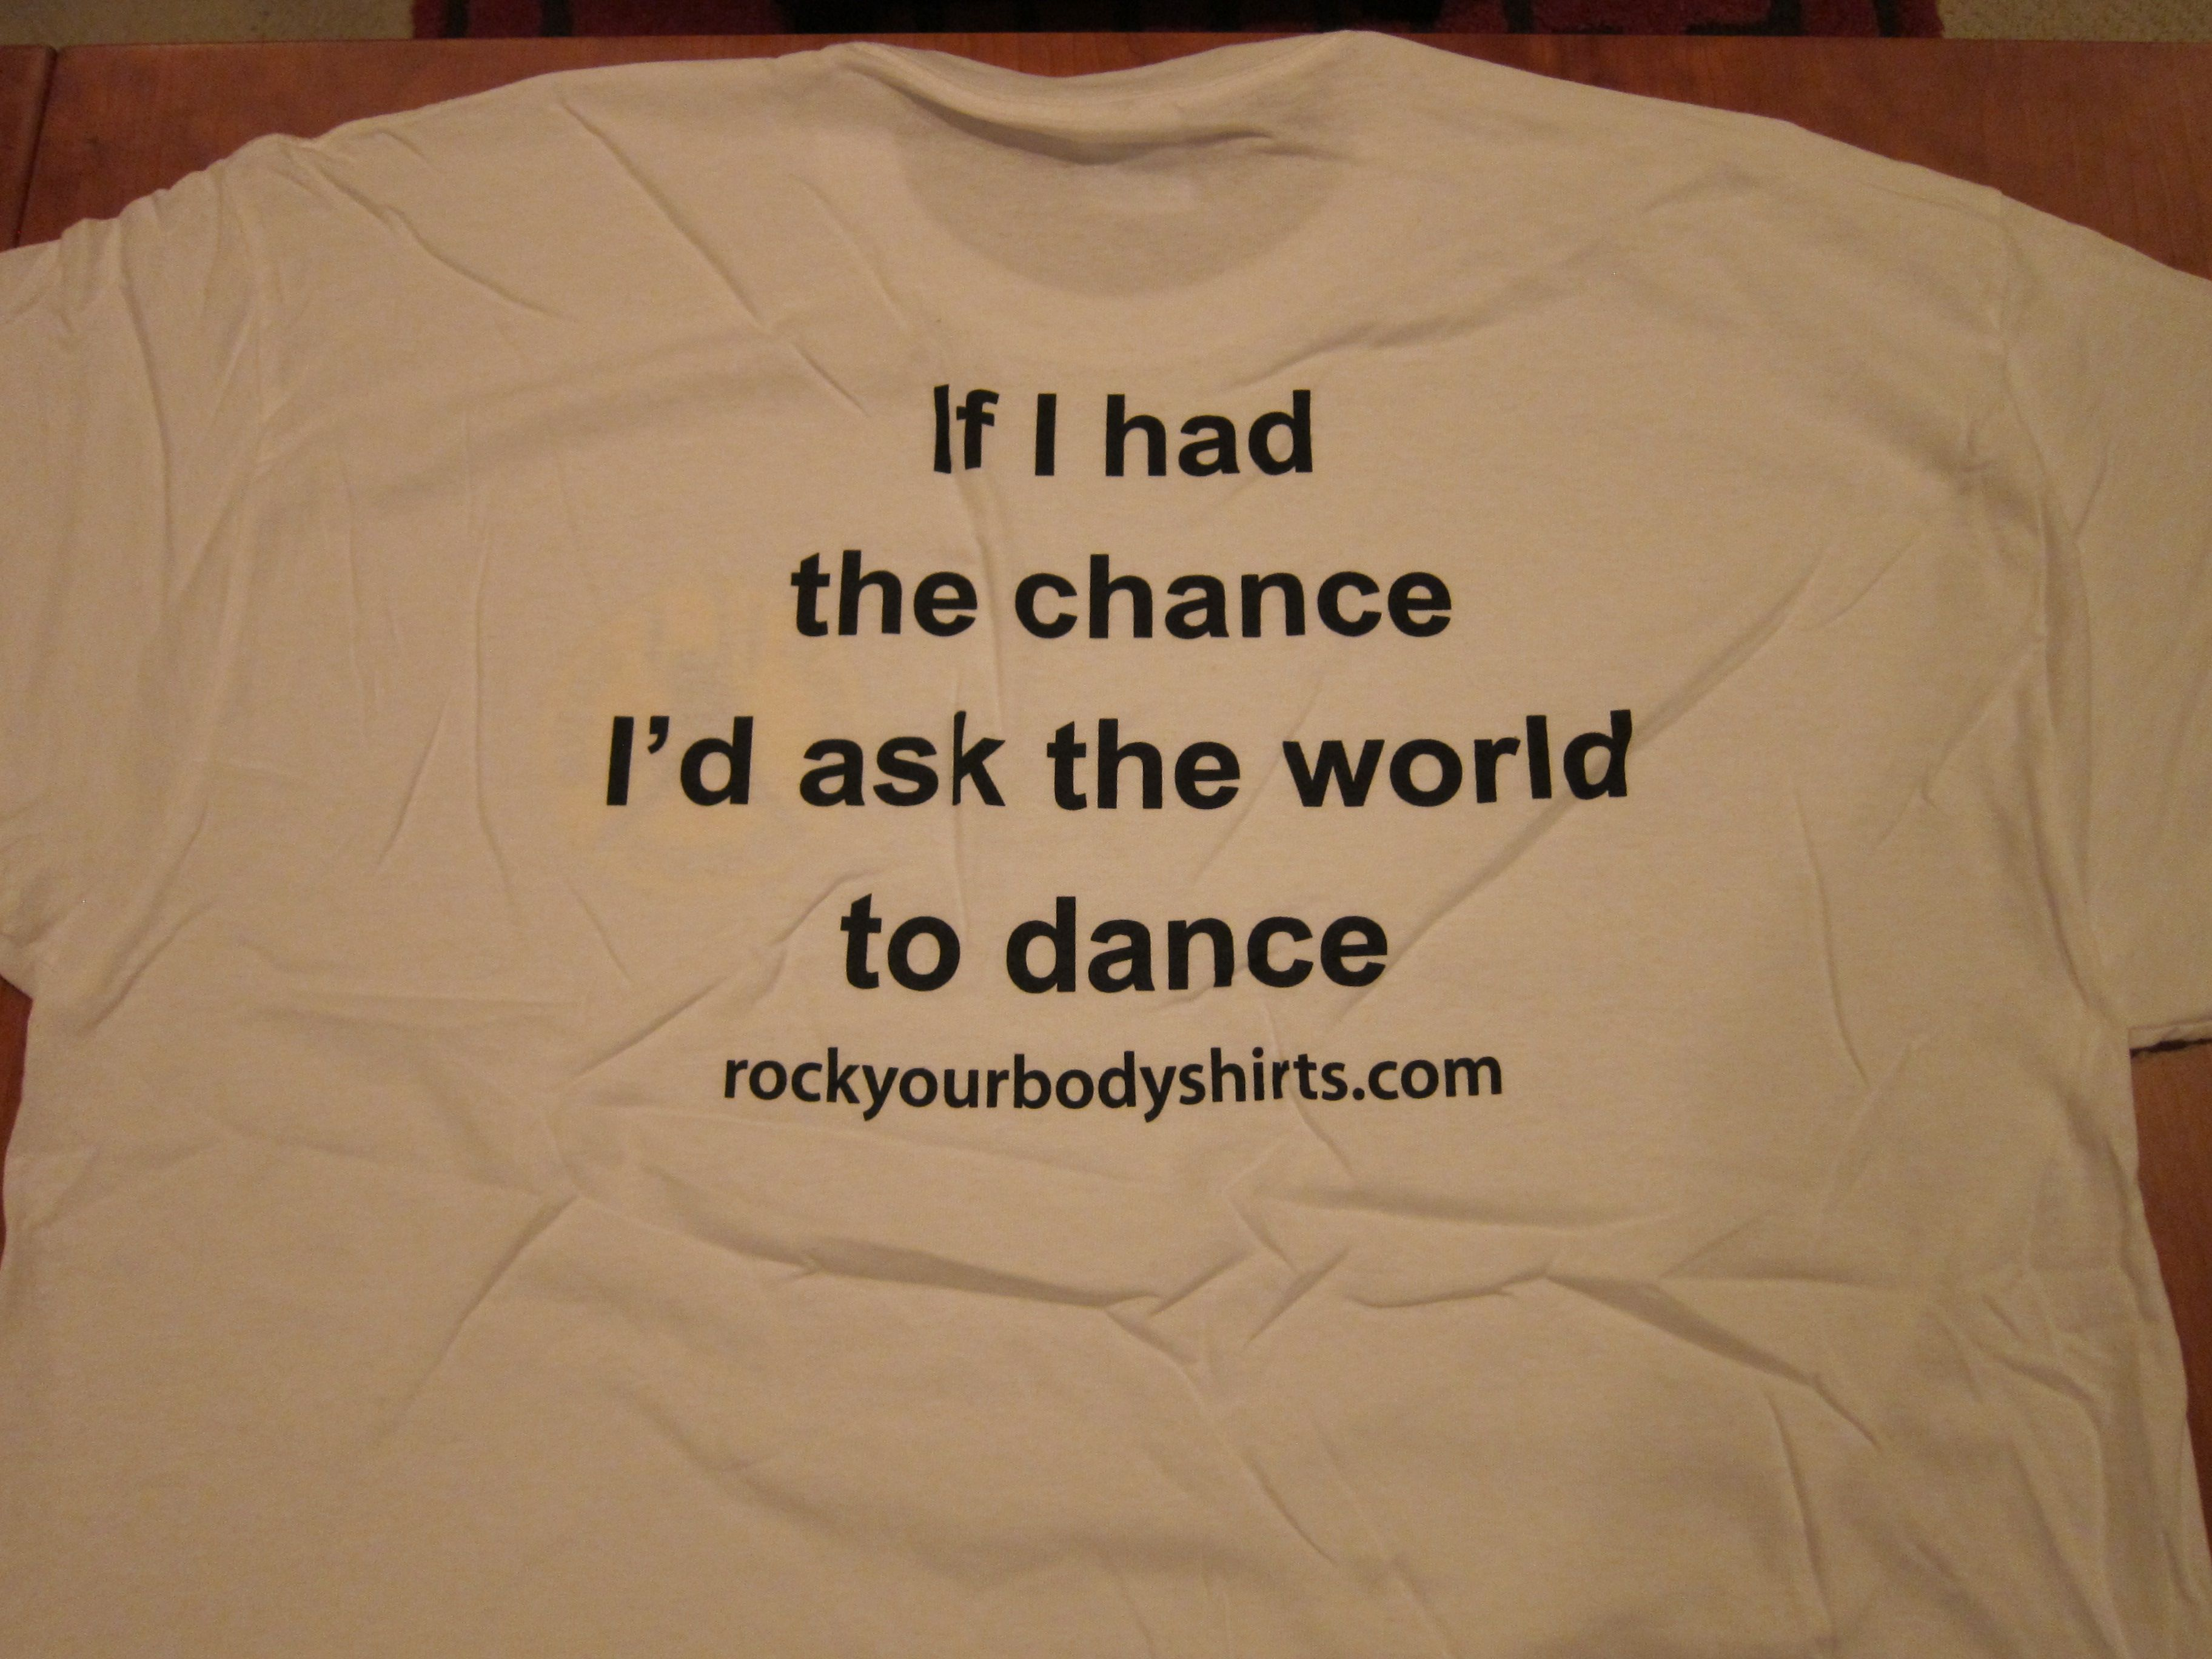 In stock for $20 at http://www.rockyourbodyshirts.com/products/dance